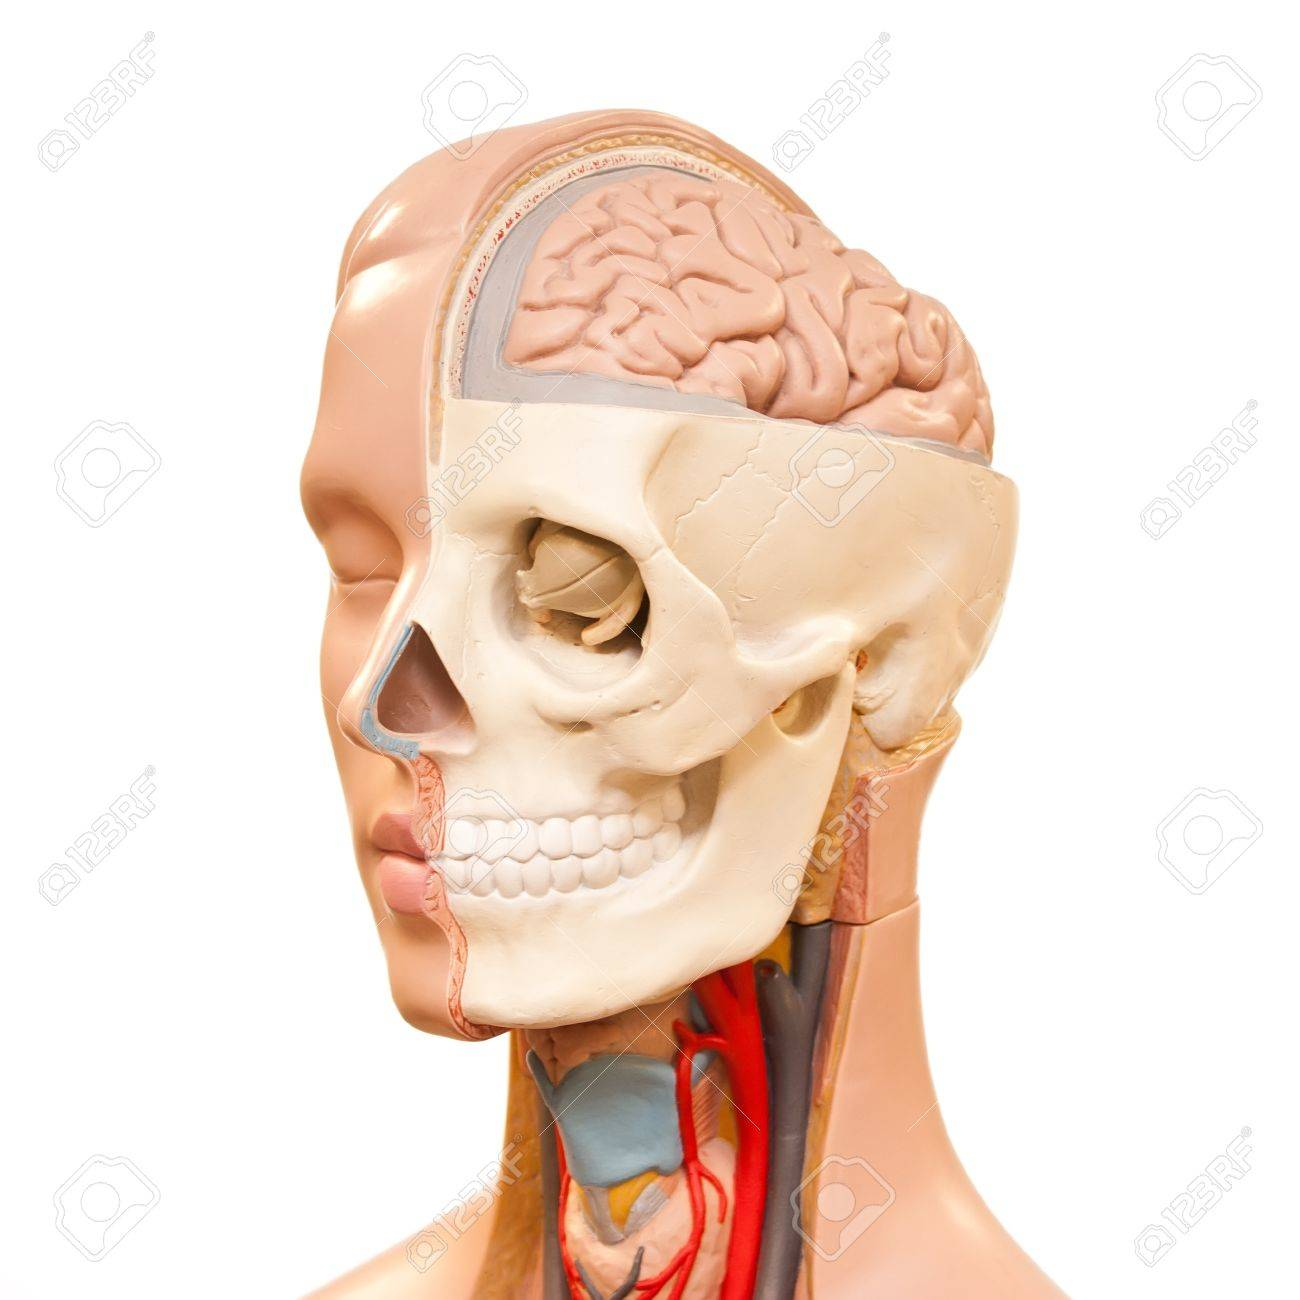 Human Head Anatomy Picture Stock Photo Picture And Royalty Free